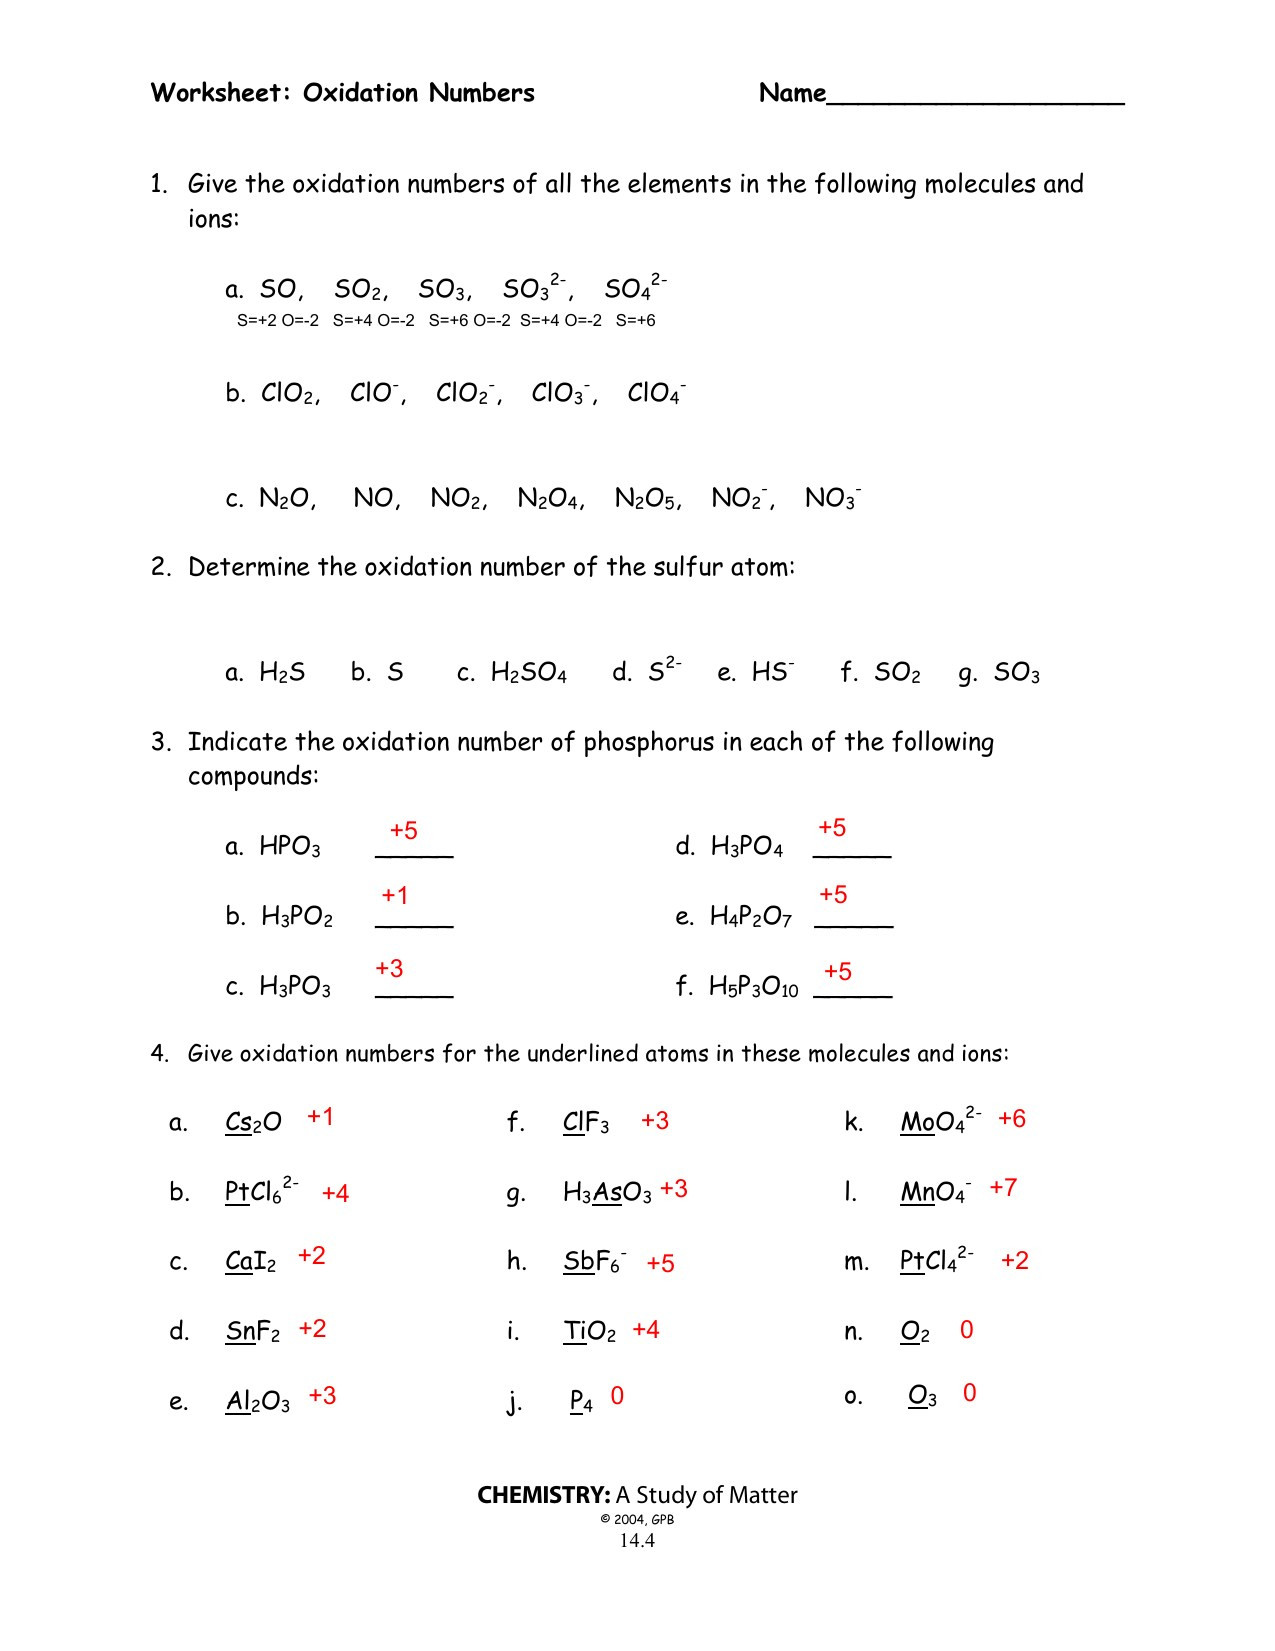 Oxidation Number Worksheet with Answers